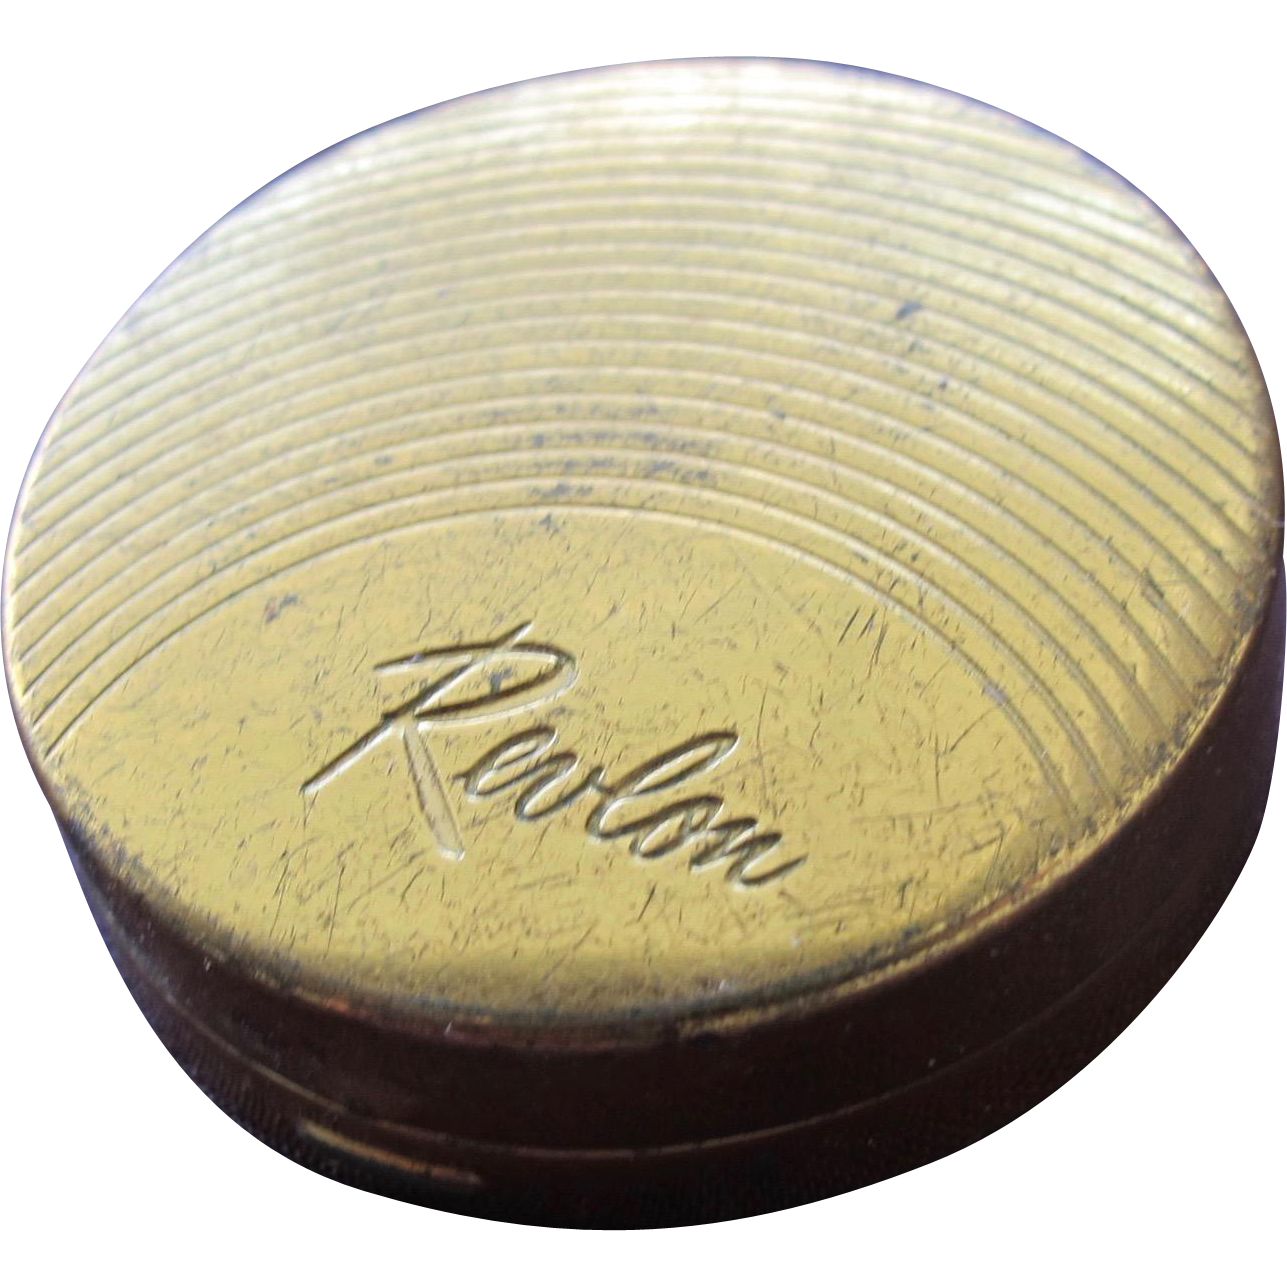 Vintage Compact by Revlon Gold Metal with Rouge